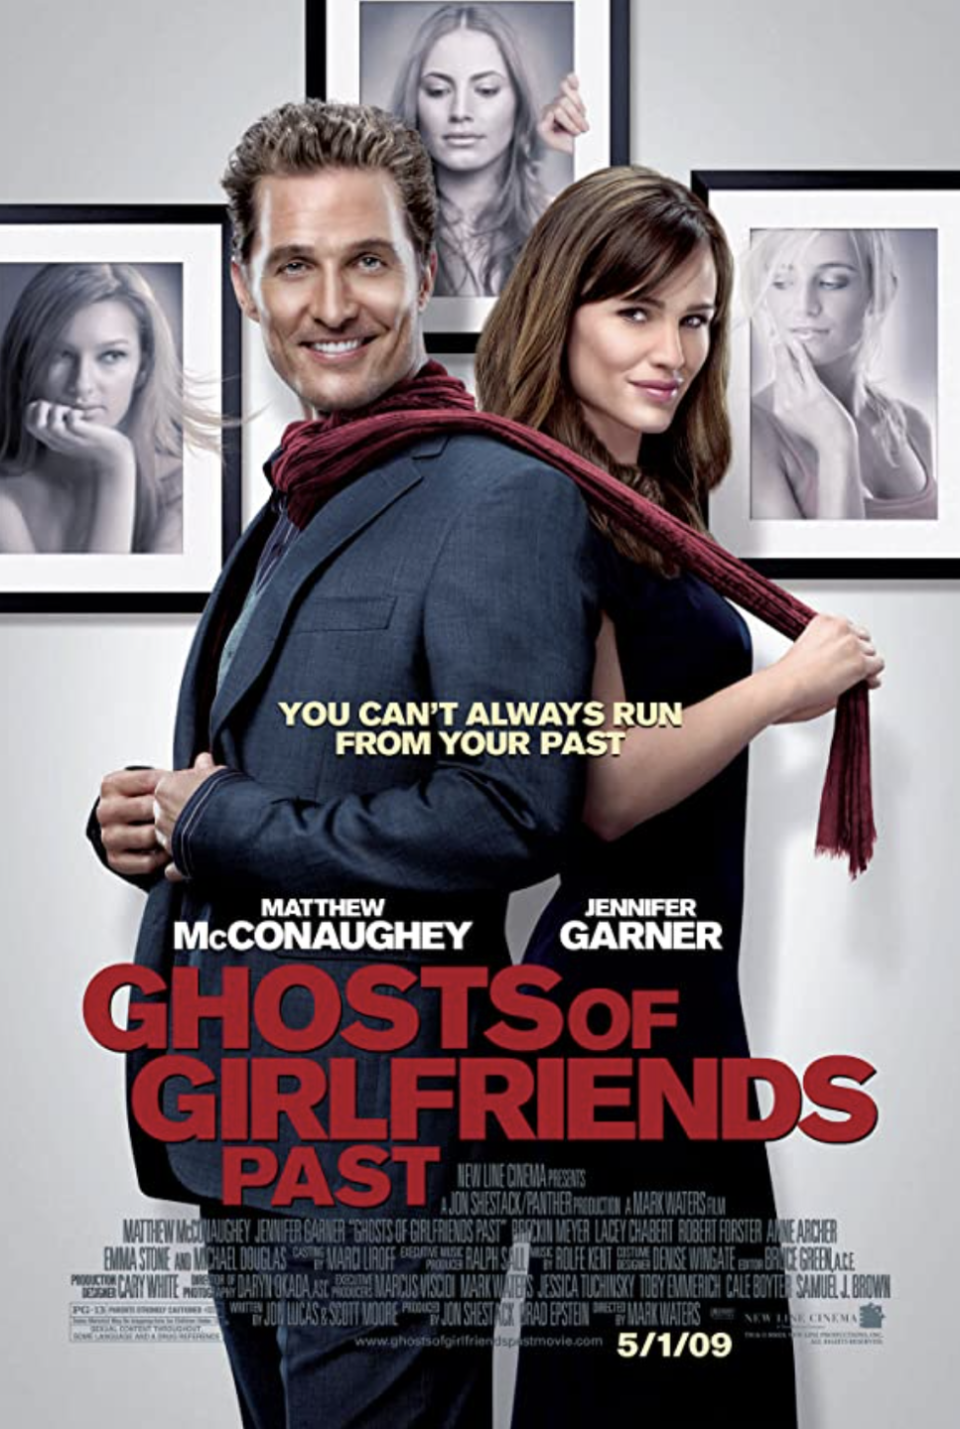 "<p>In this<em> Christmas Carol</em> adaptation, Matthew McConaughey's playboy character is visited by the ghosts of his relationships gone wrong. The hope is that he'll finally learn the true meaning of love. Then, and only then, can he try to make things work with his childhood sweetheart, played by Jennifer Garner.</p><p><a class=""link rapid-noclick-resp"" href=""https://www.netflix.com/search?q=Ghosts+of+Girlfriends+Past&jbv=70101700"" rel=""nofollow noopener"" target=""_blank"" data-ylk=""slk:STREAM NOW"">STREAM NOW</a></p>"